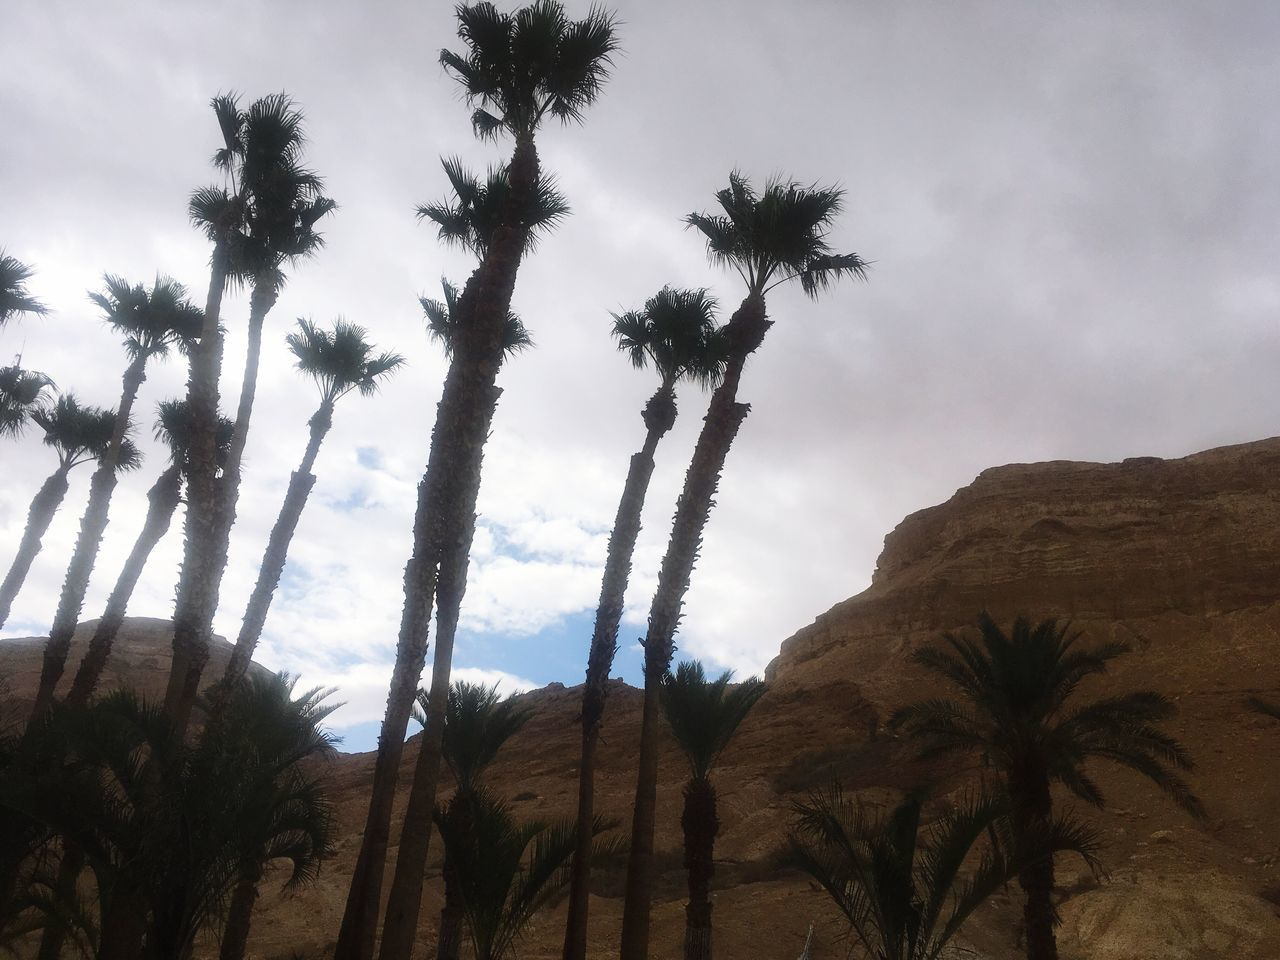 Palm Tree Tree Sky Tranquil Scene Nature Beauty In Nature Scenics Tranquility No People Outdoors Day Landscape Non-urban Scene Low Angle View Tree Trunk Cloud - Sky Travel Destinations Mountain Arid Climate Israel Deadsea Deadsea_israel